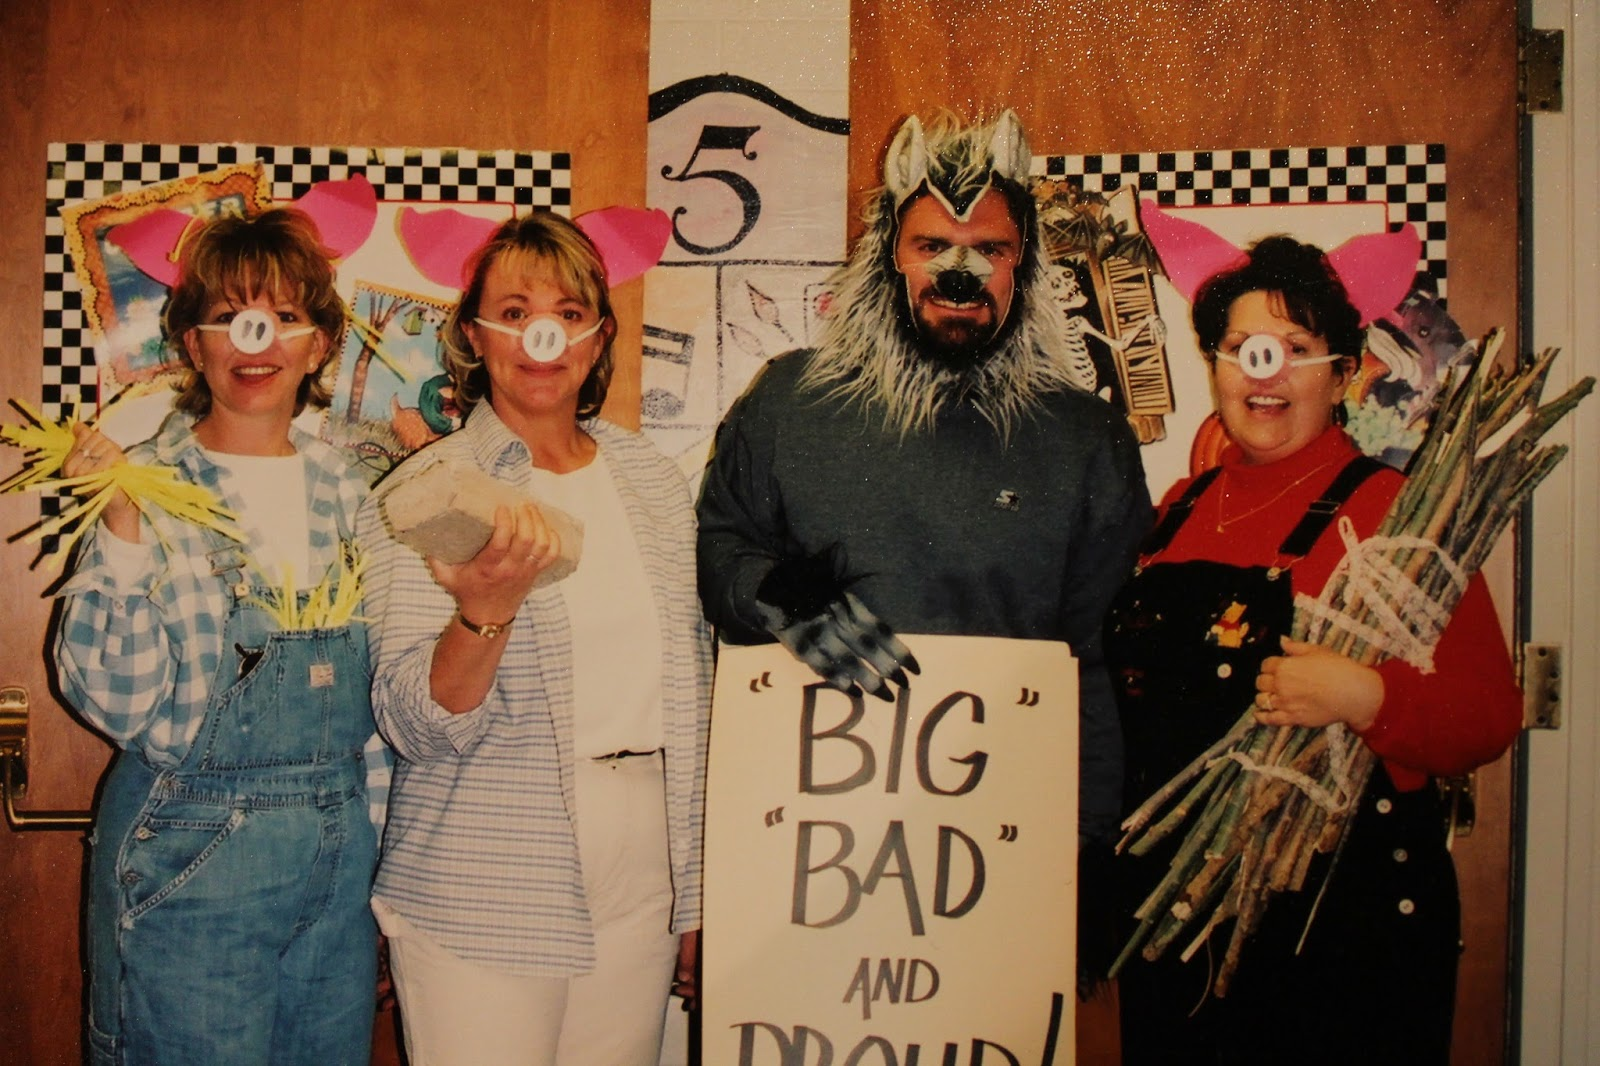 Three Little Pigs and  Big Bad and Proud  & Randomocity: Trick or Treat II (More costume ideas for groups)